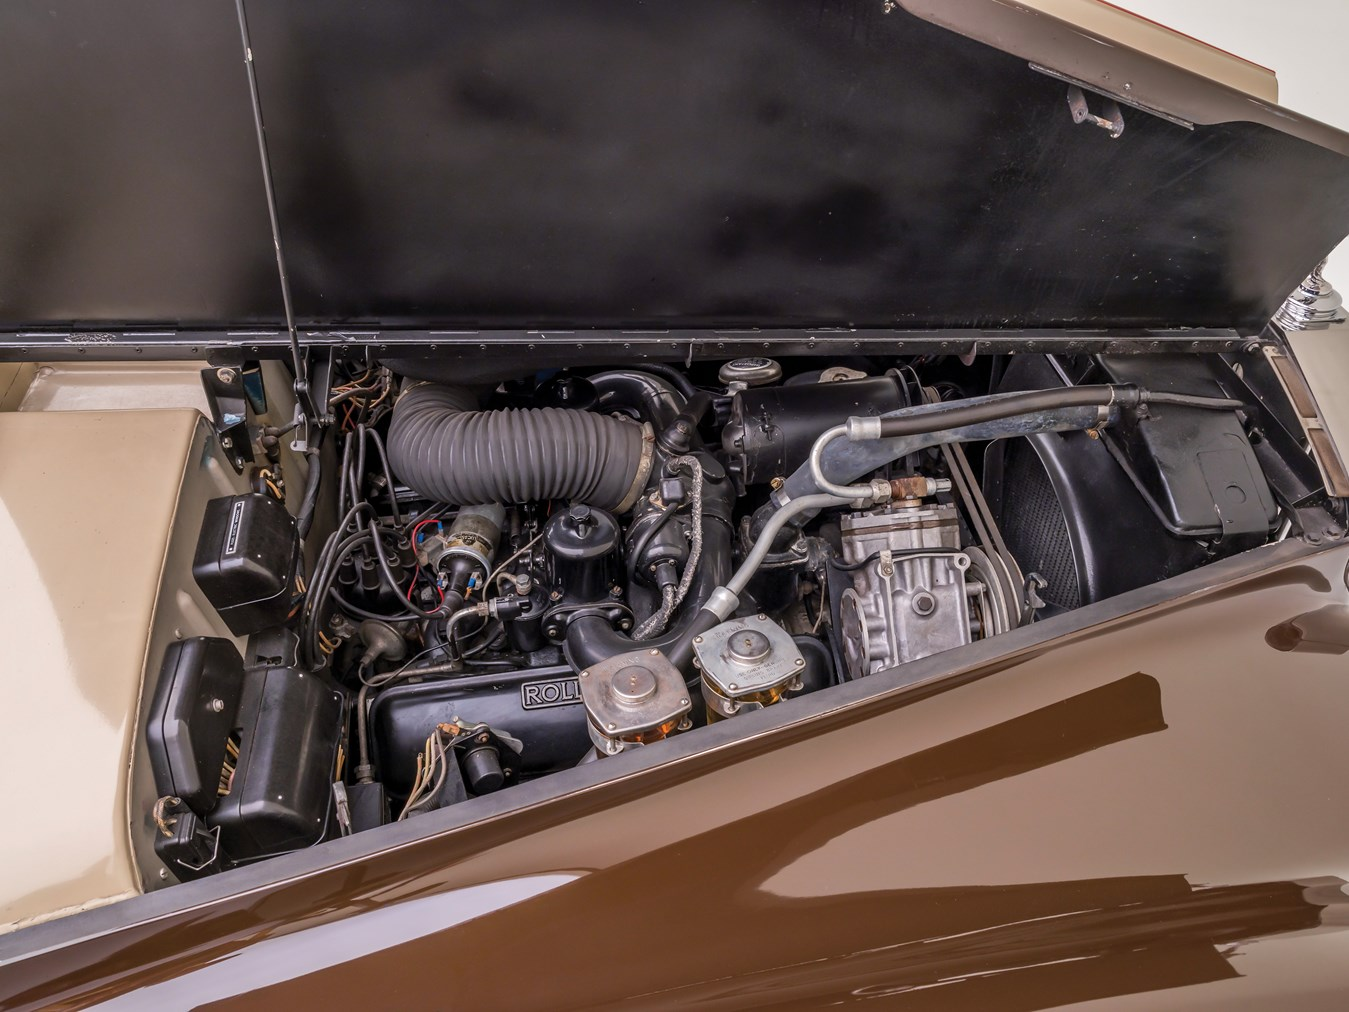 1966 Rolls-Royce Silver Cloud III Touring Limousine engine